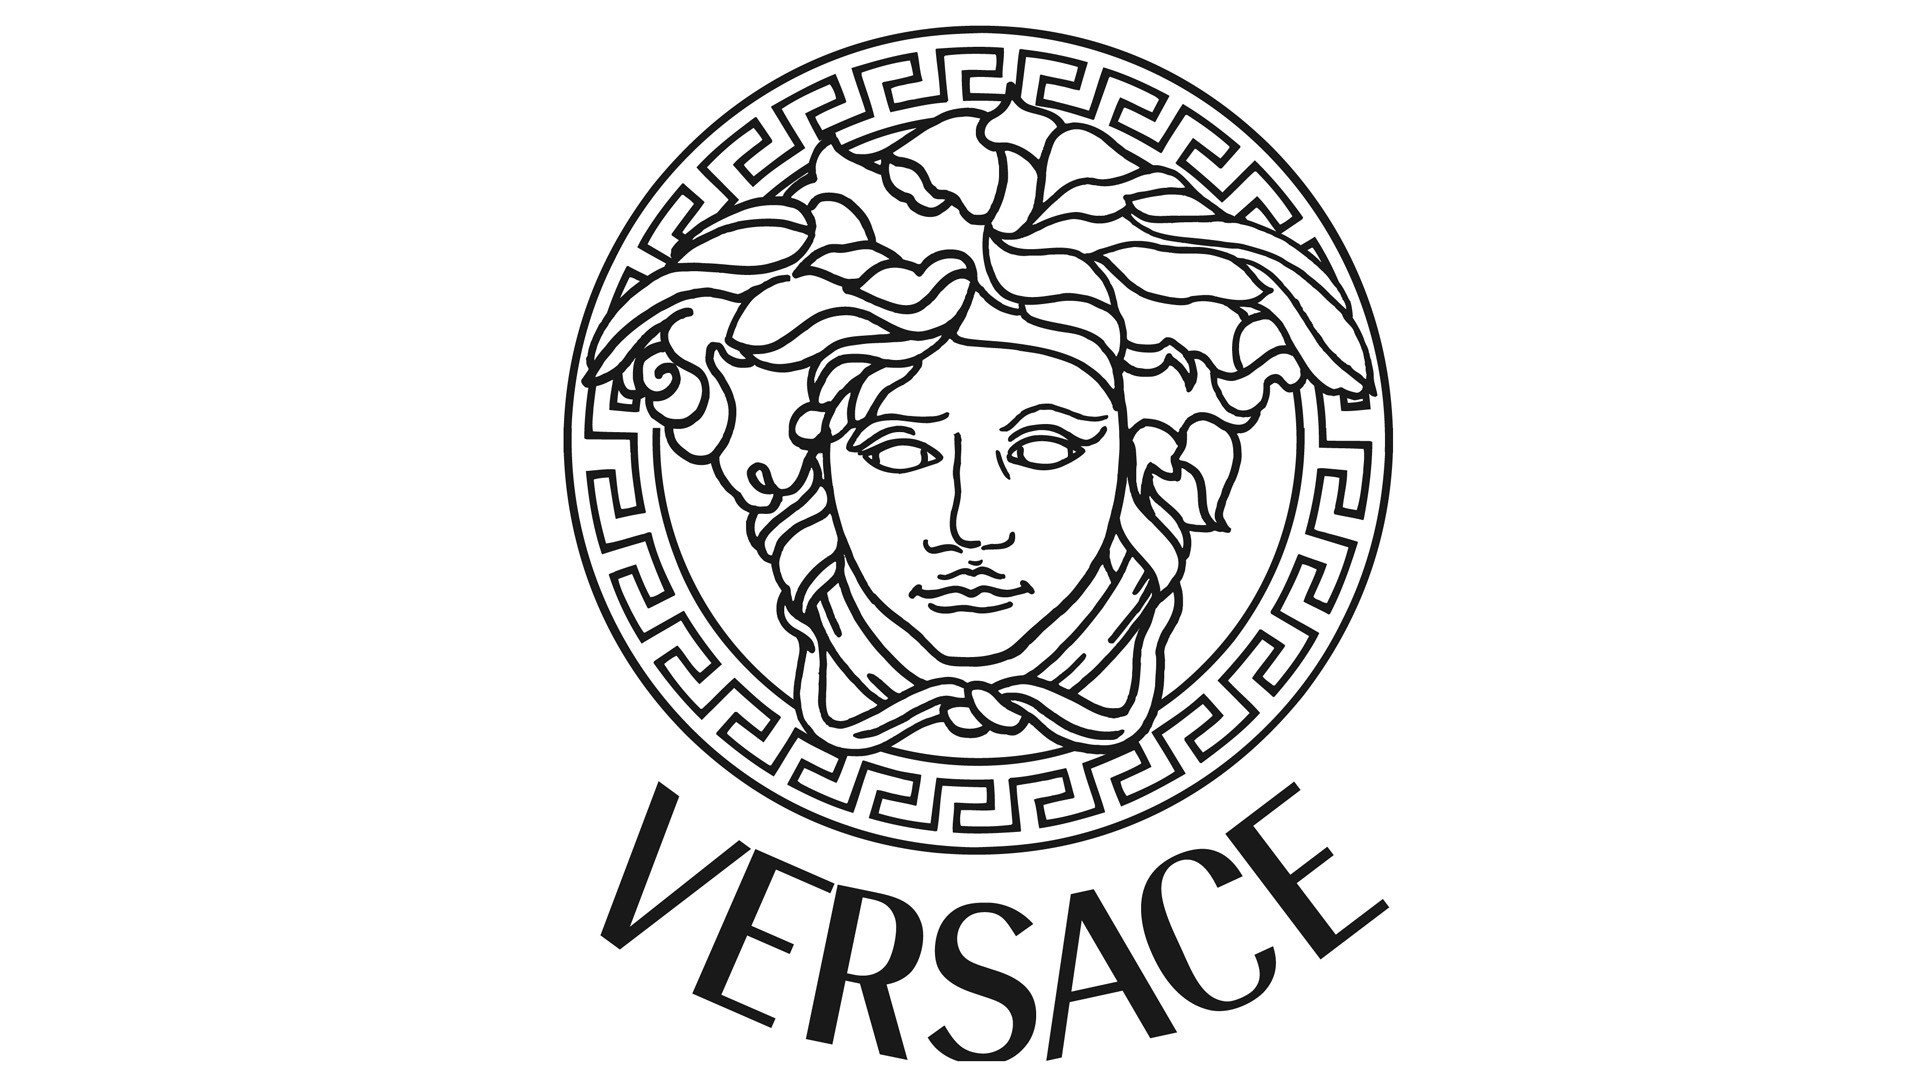 desktop wallpaper for versace, Carlton Leapman 2016-02-22